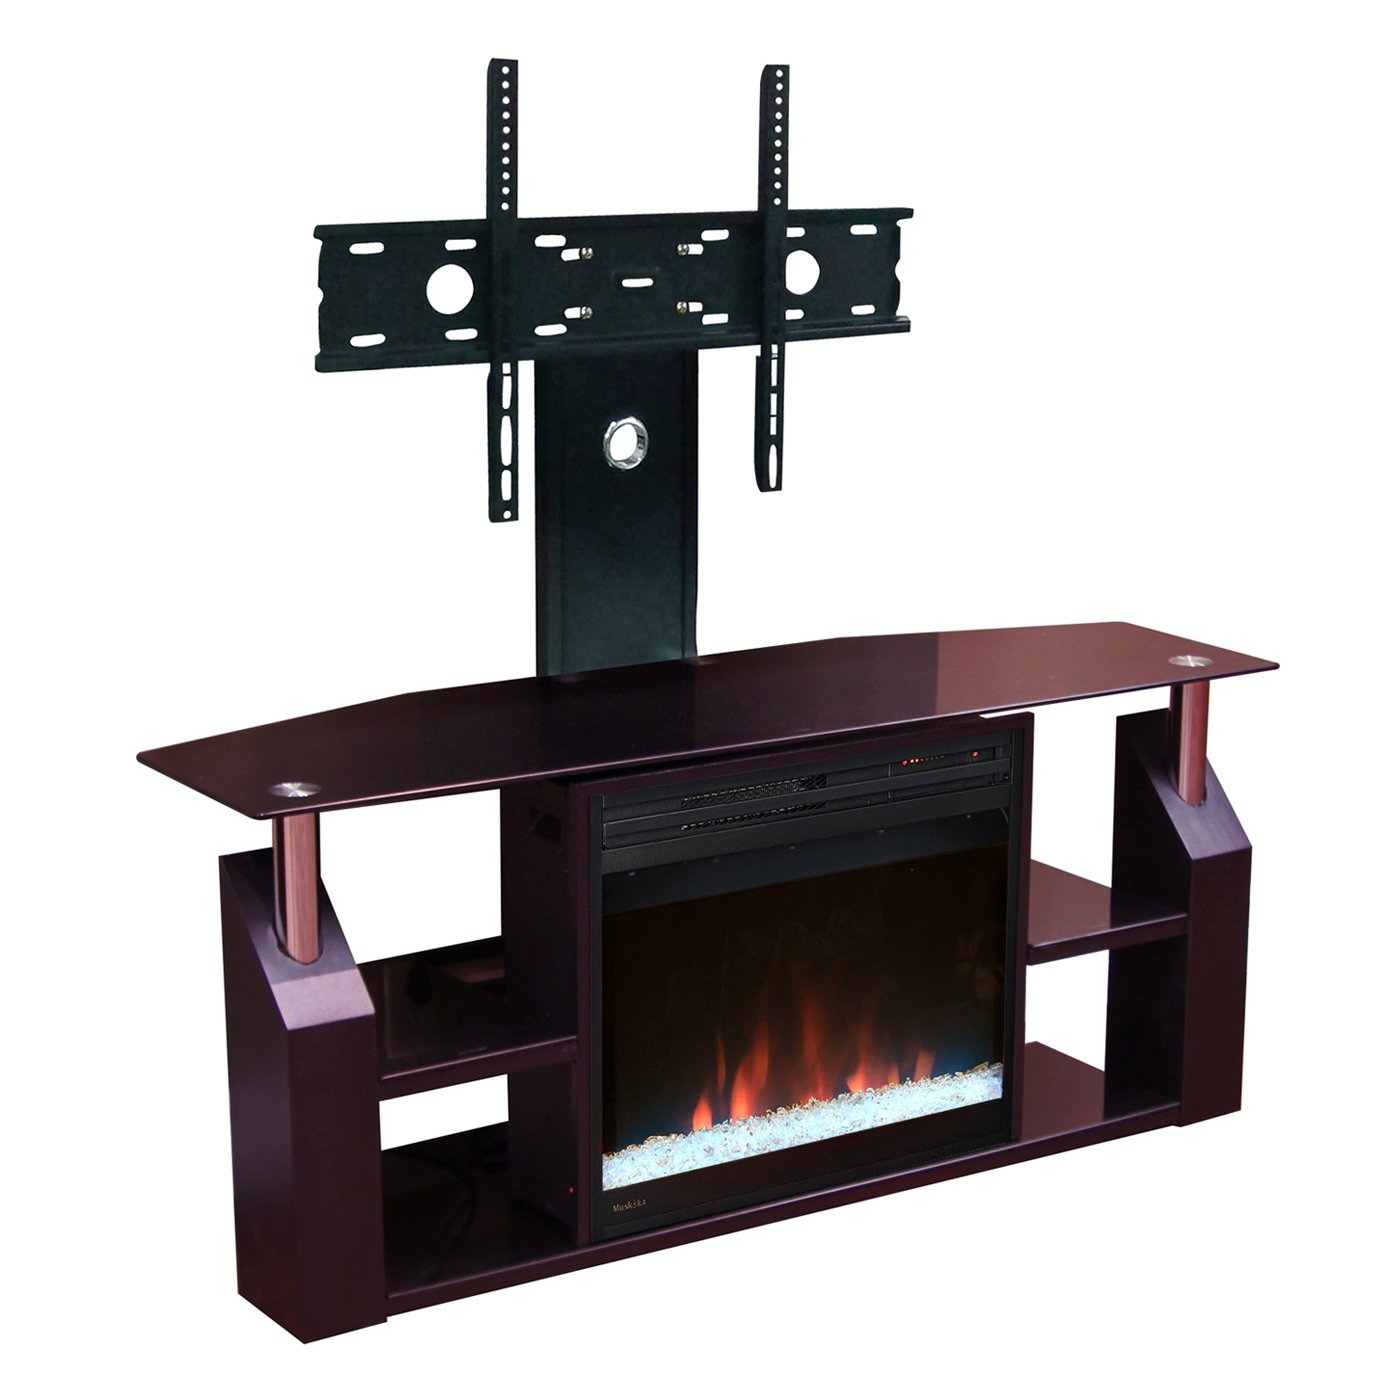 Attractive muskoka electric fireplace for home furniture with muskoka electric fireplace insert